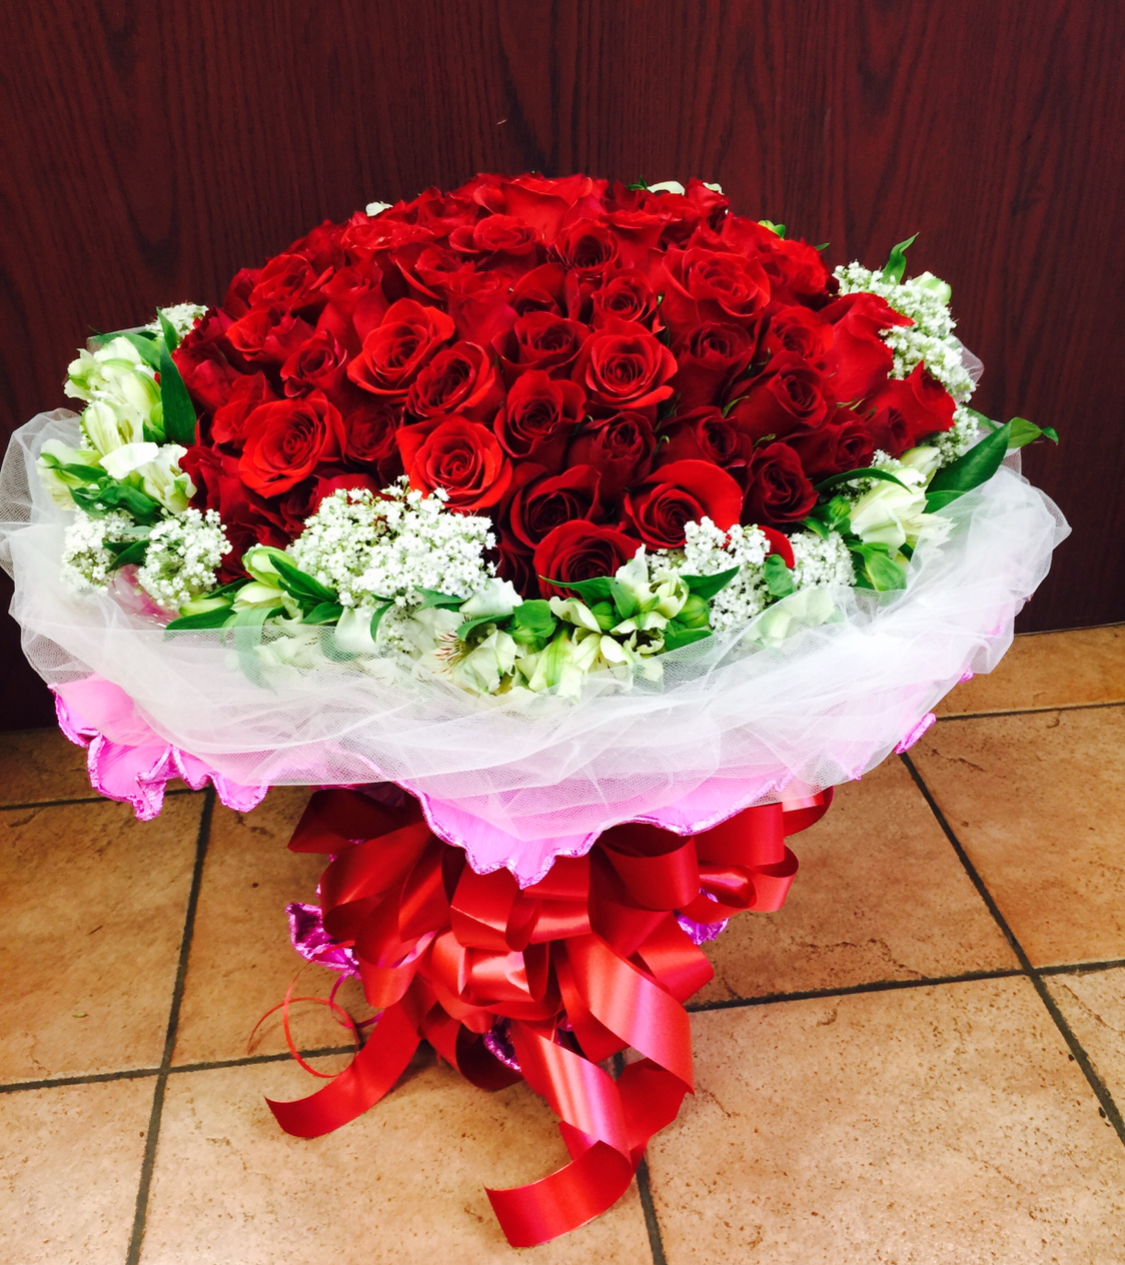 99 Red Roses with Alstroemeria